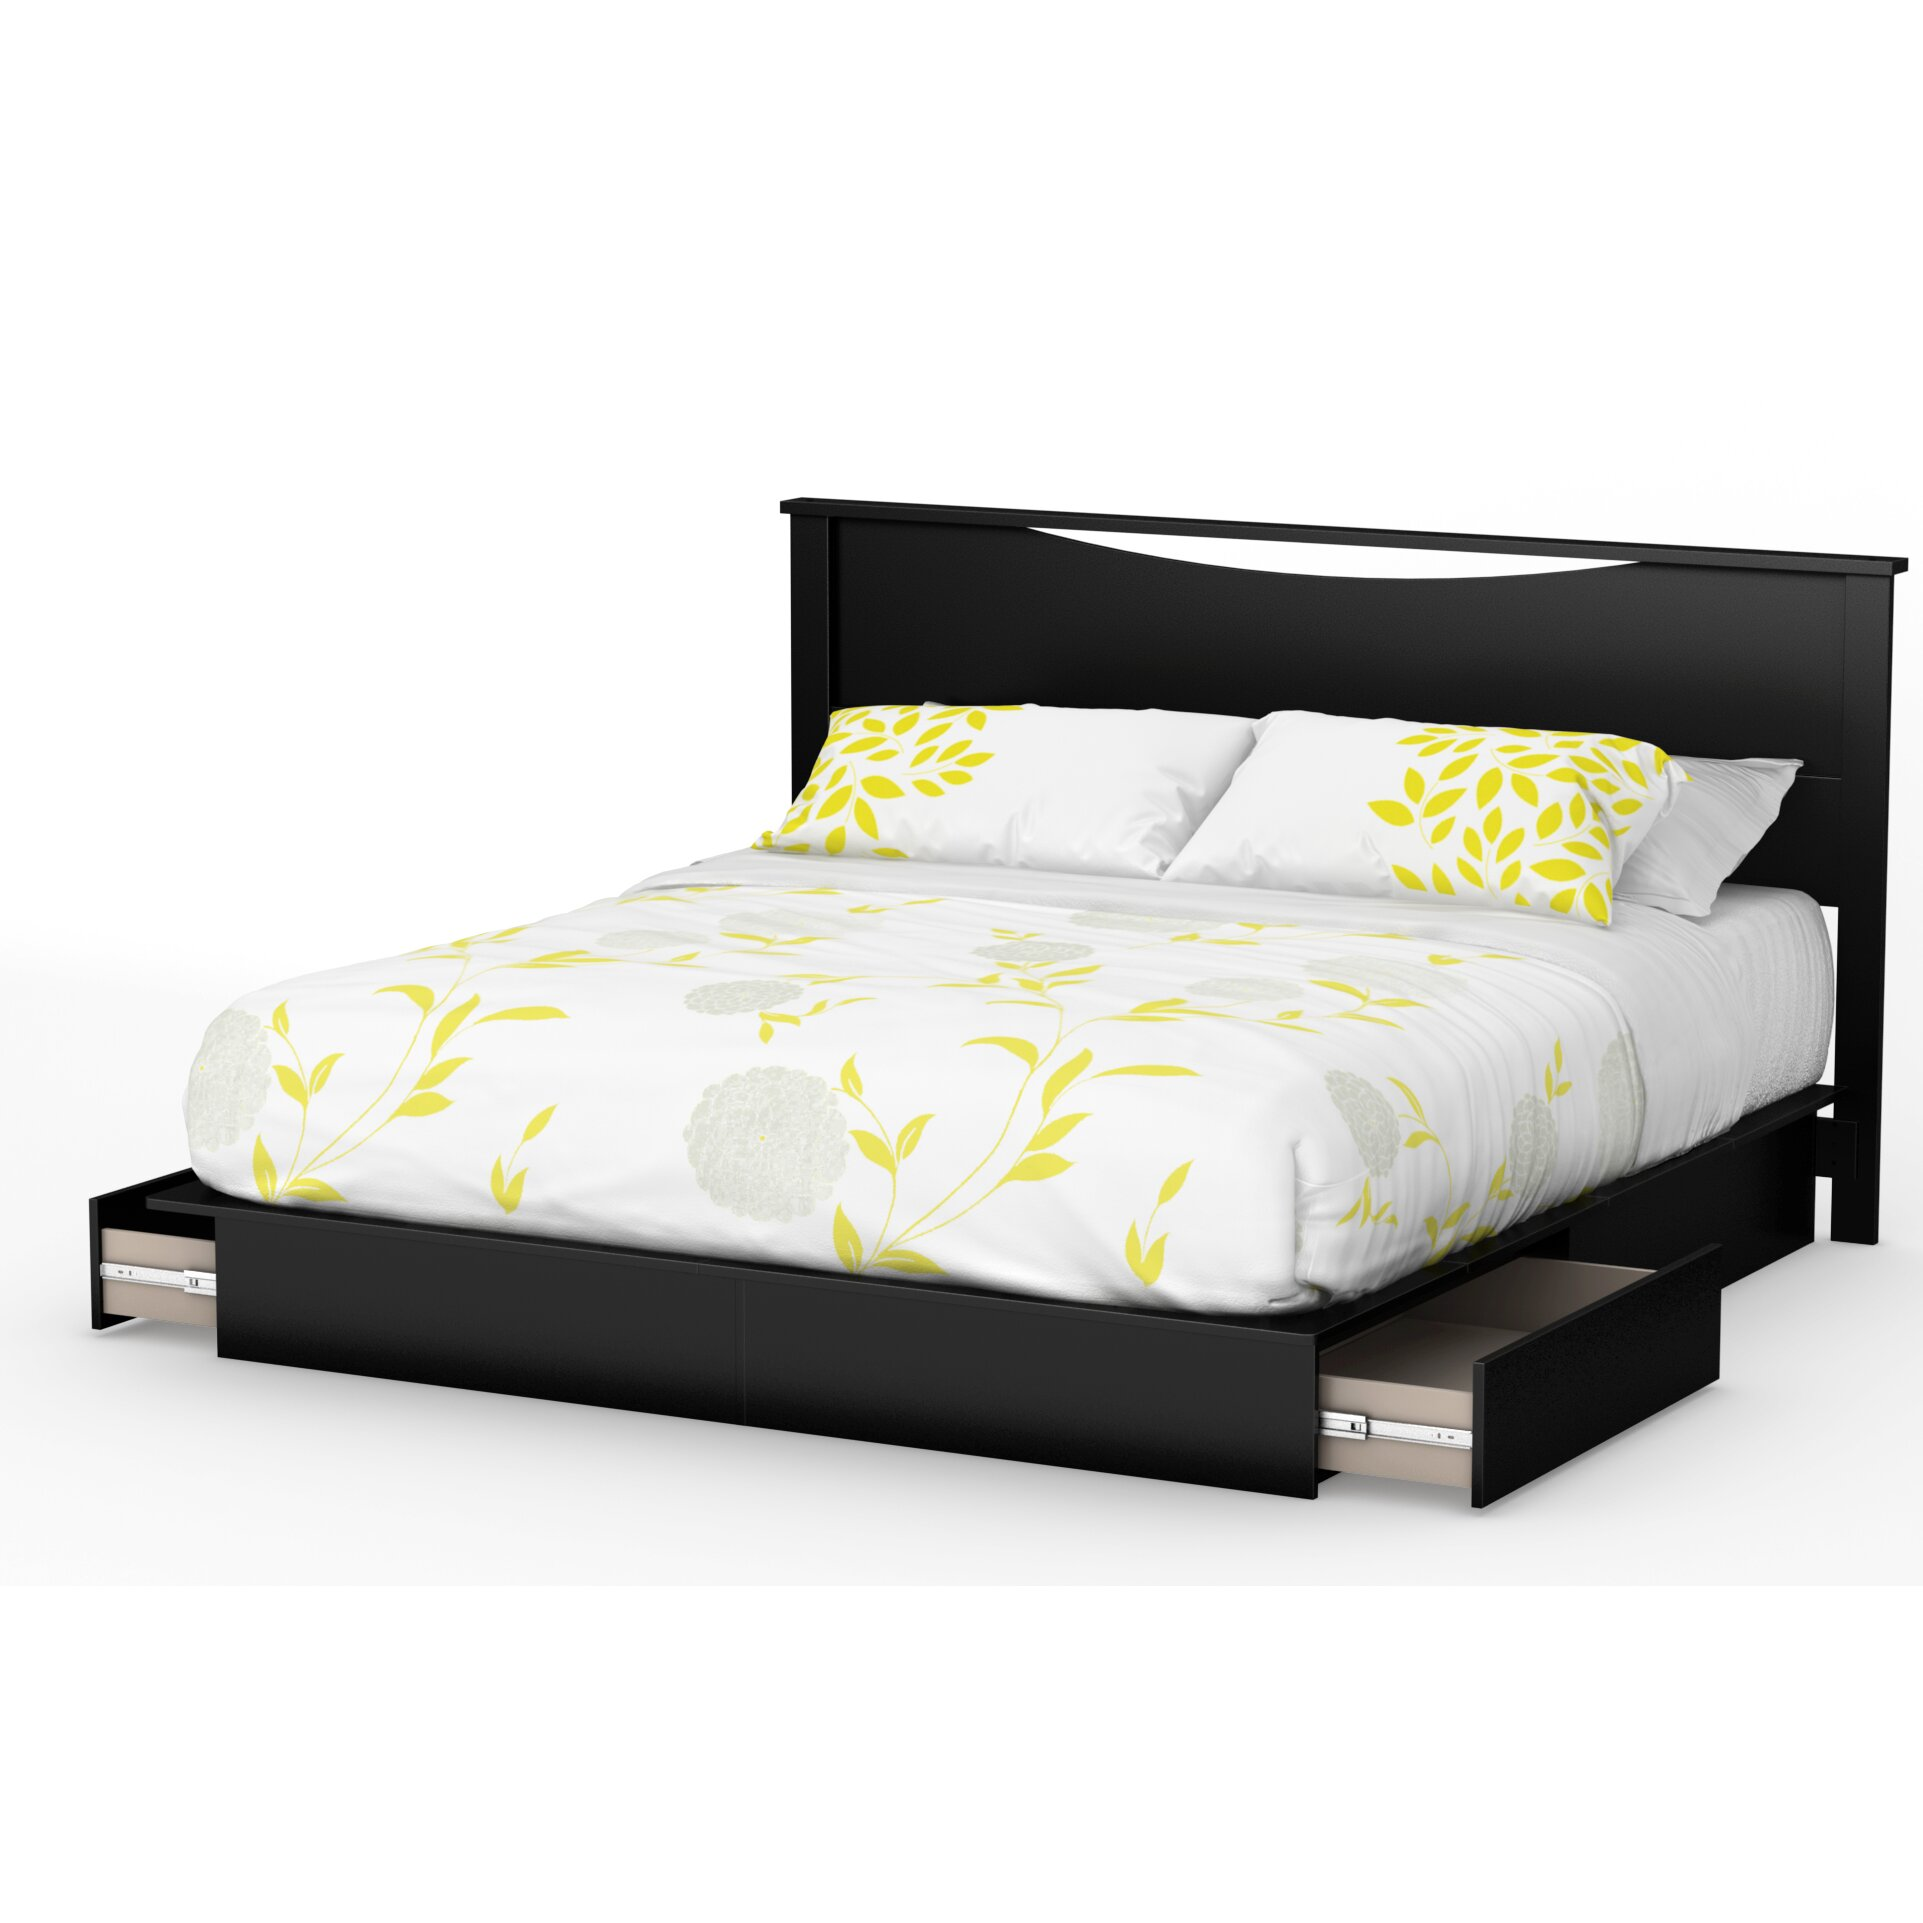 south shore king storage platform bed reviews wayfair. Black Bedroom Furniture Sets. Home Design Ideas